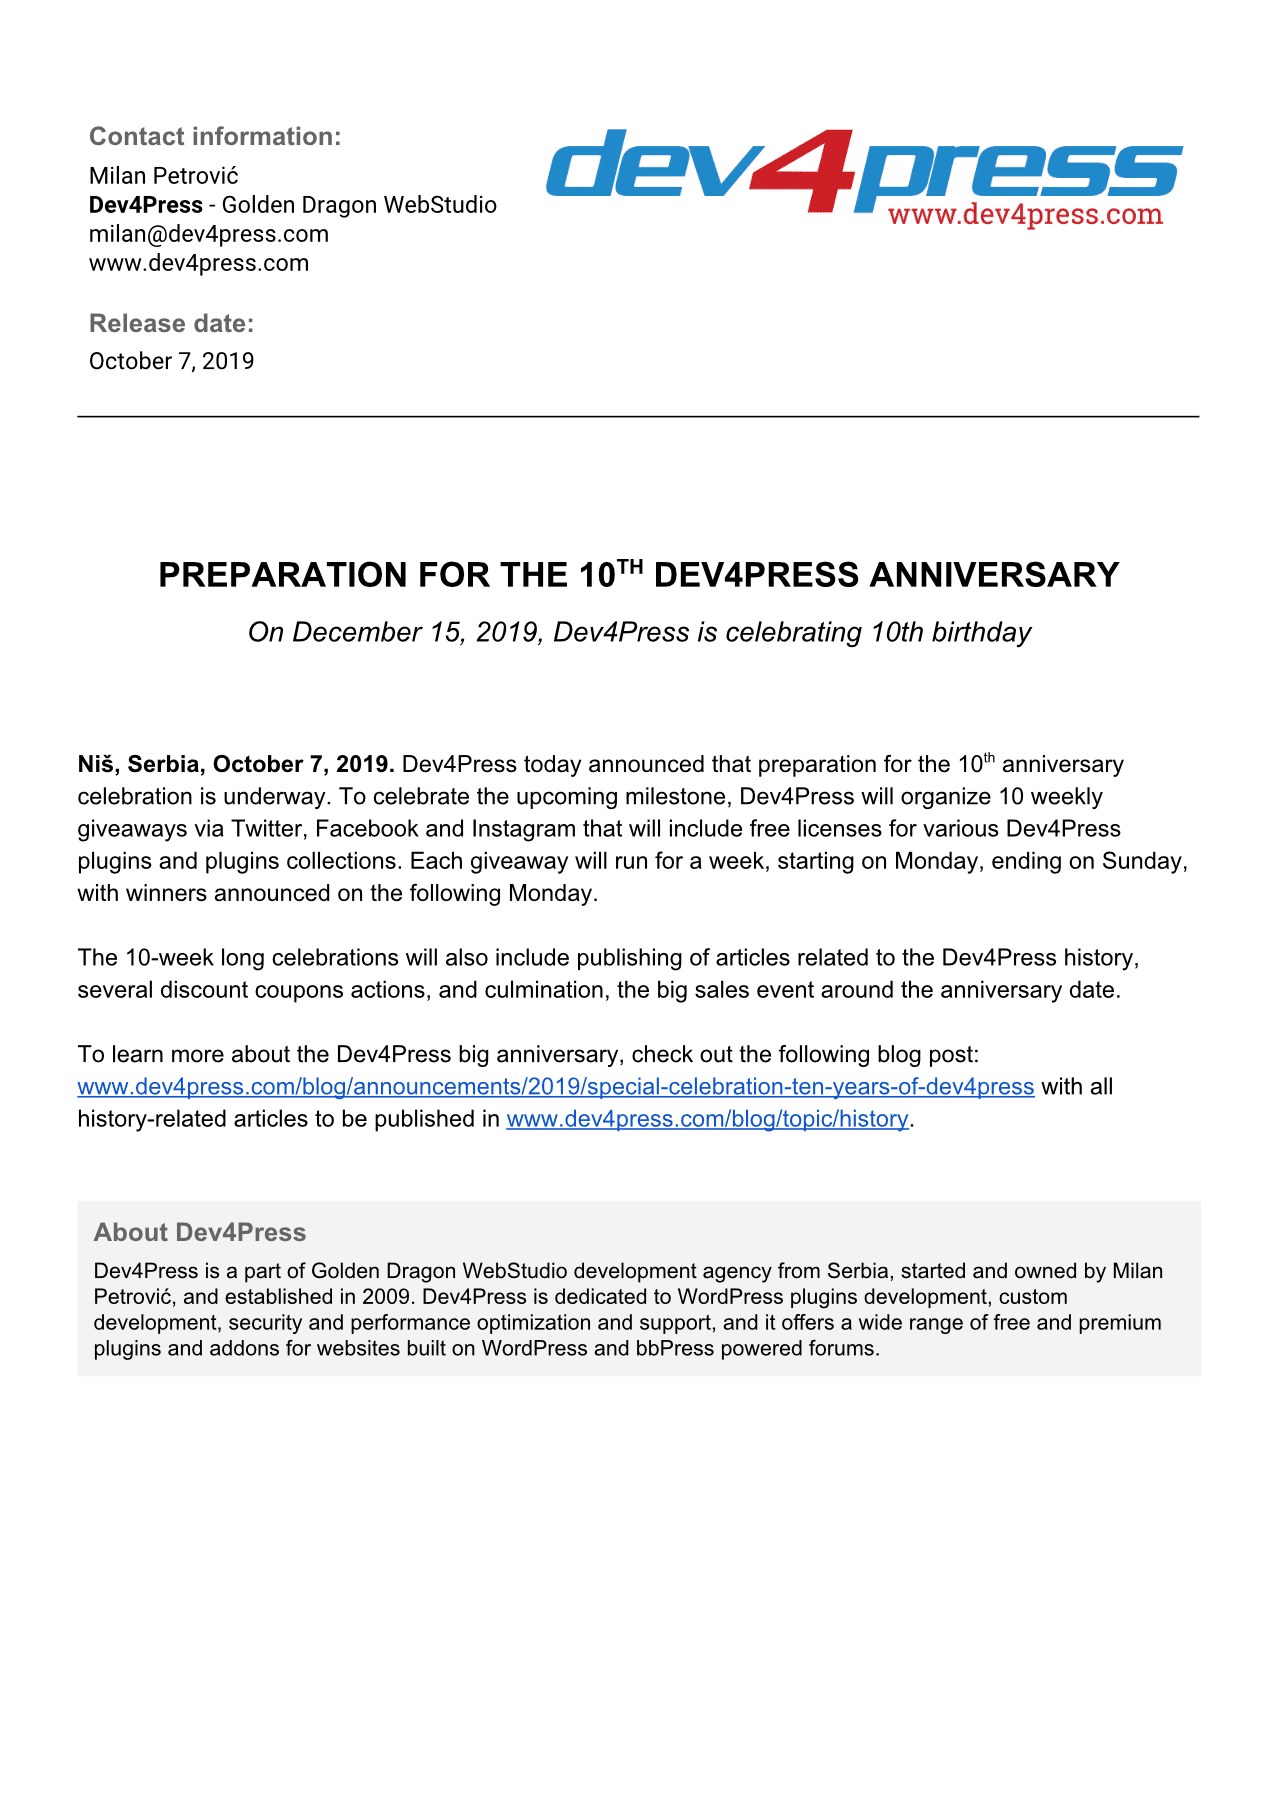 Featured image for: Preparation for the 10th Dev4Press Anniversary